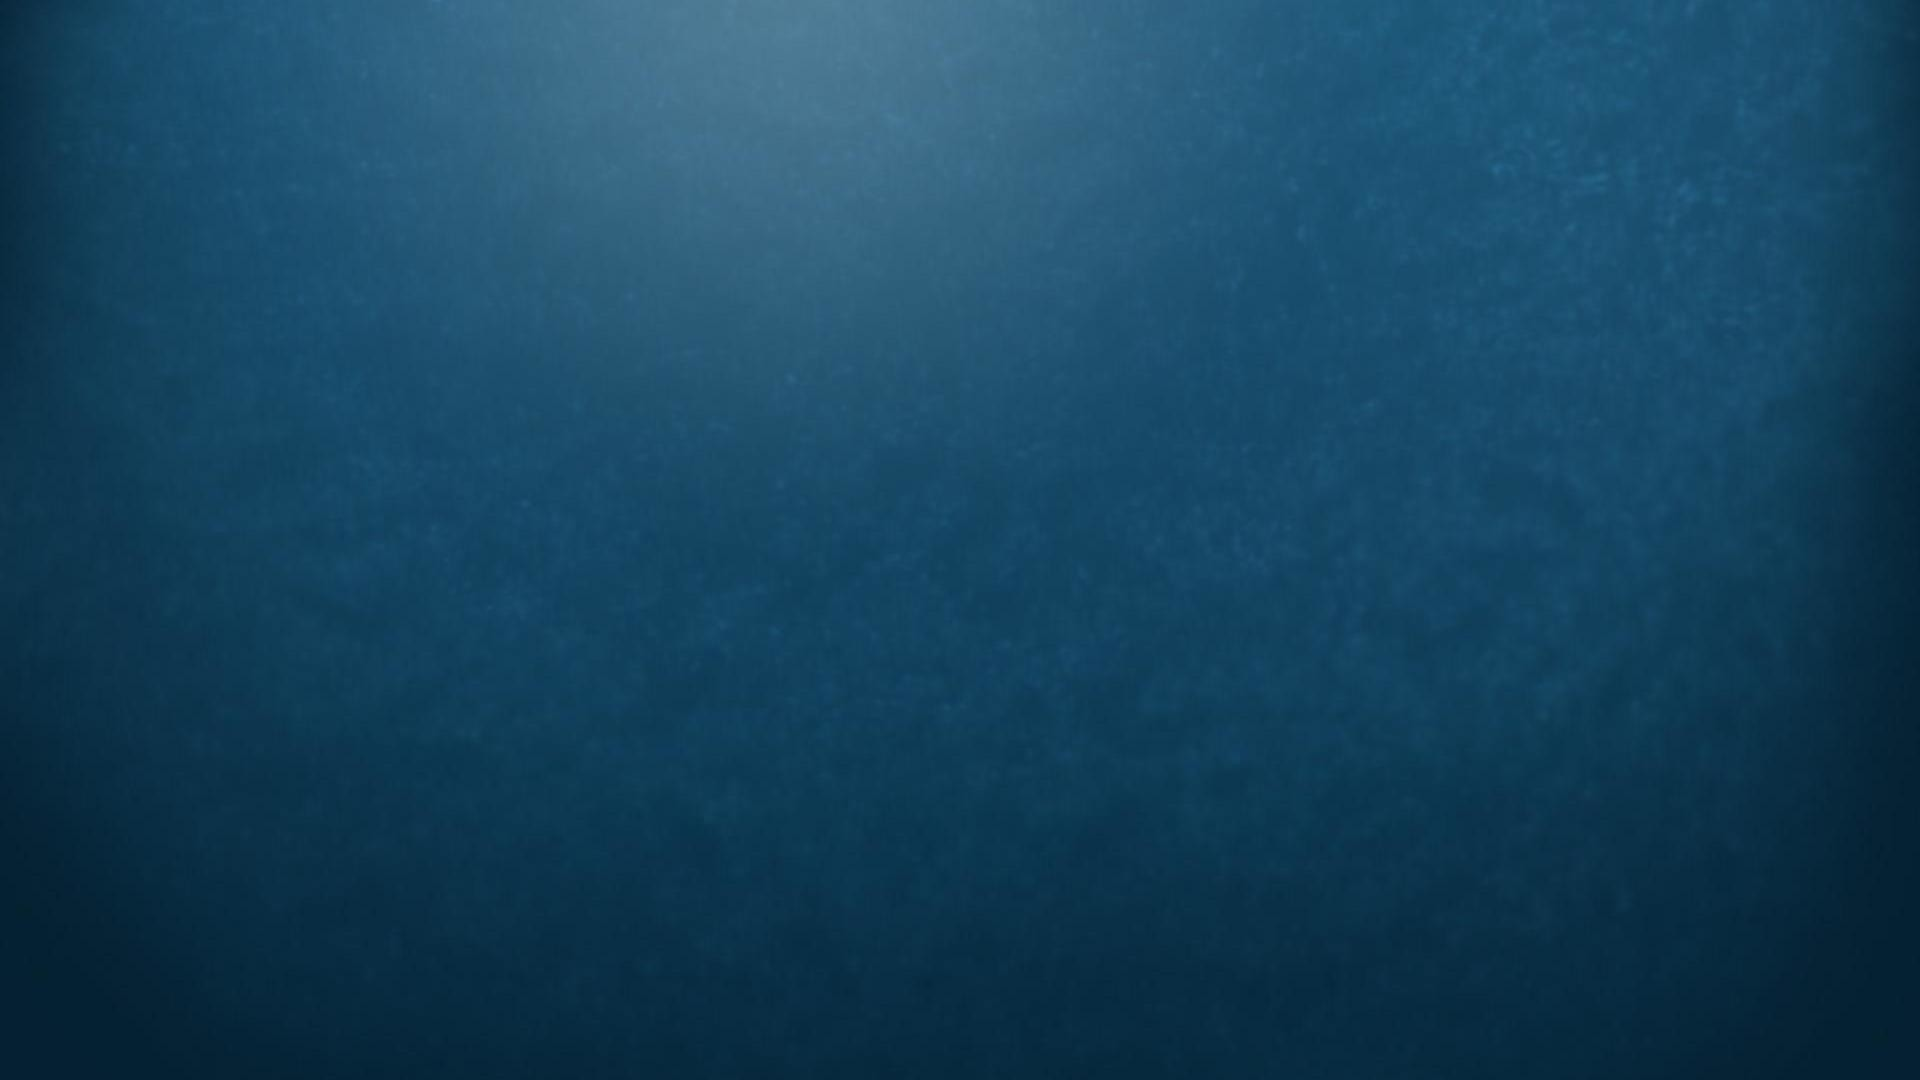 1920x1080  | Abstract Blue Gradient Desktop Wallpaper | Blue Wallpapers